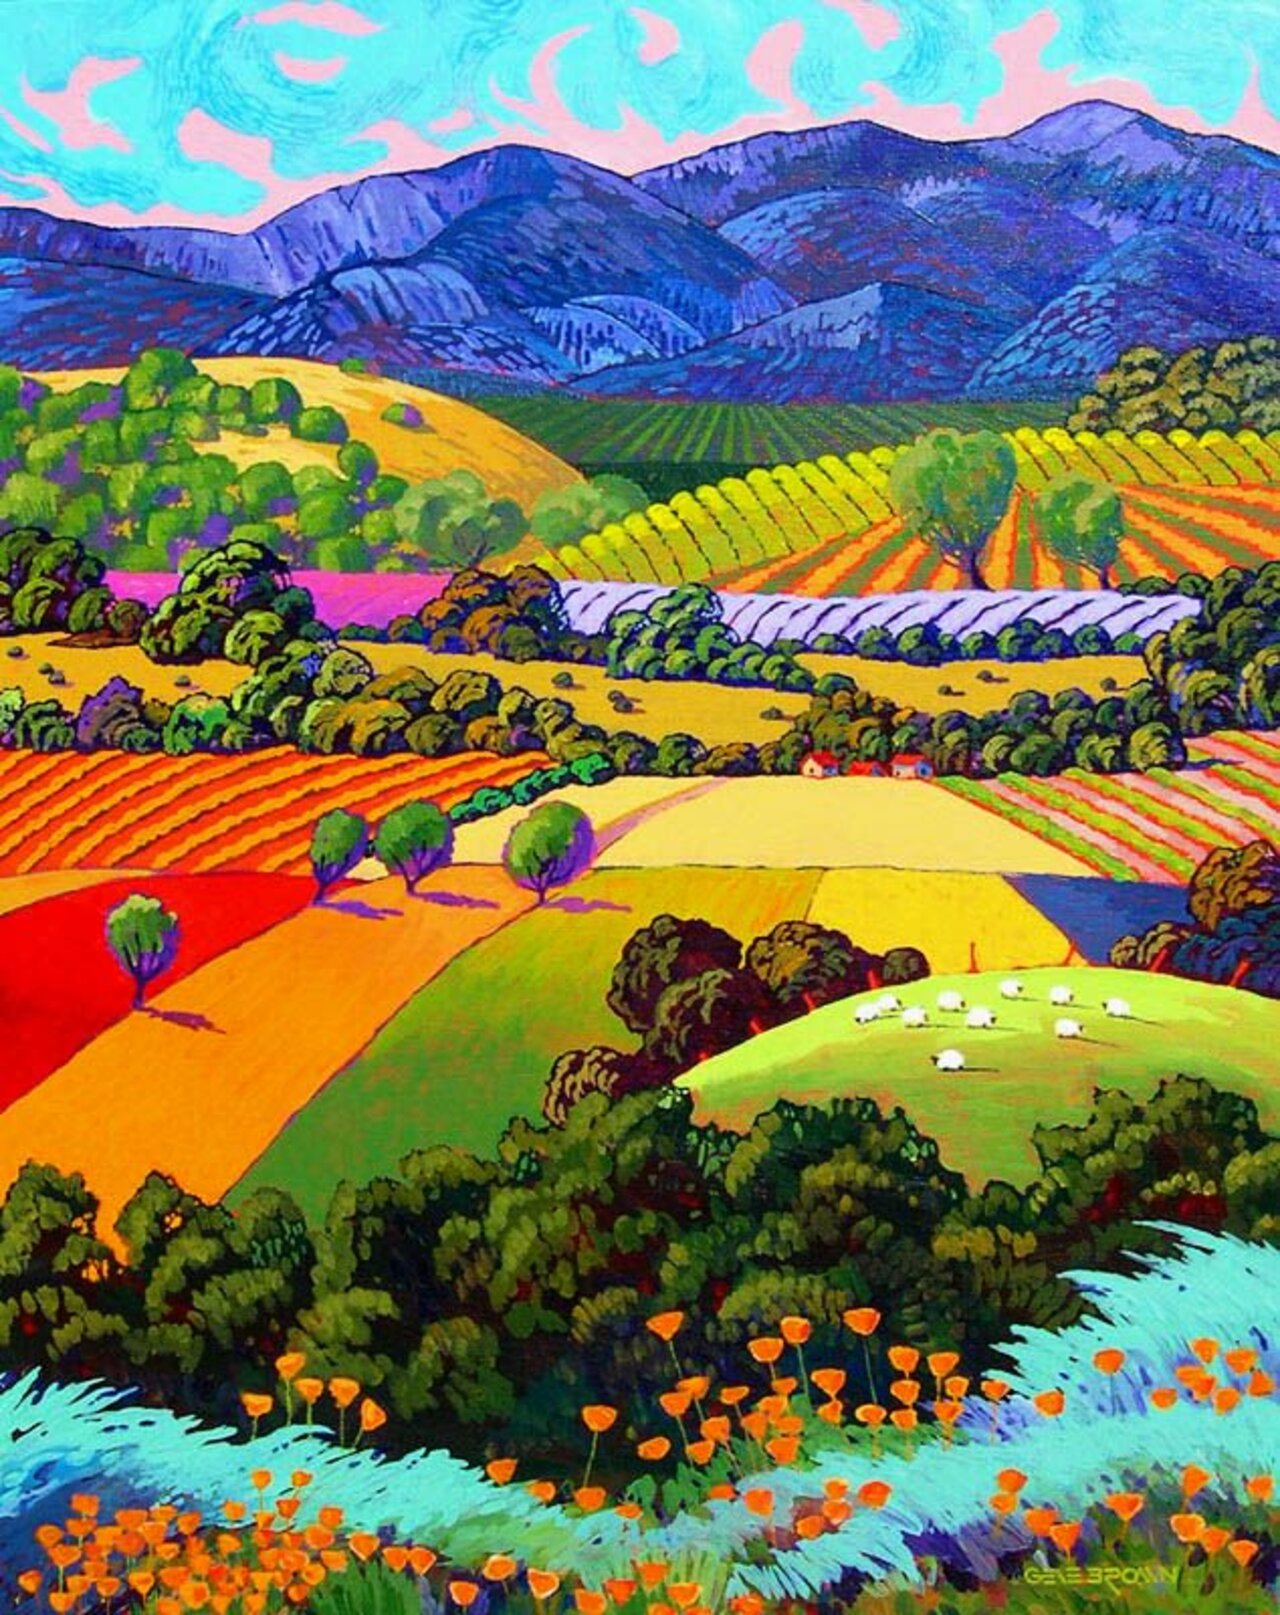 By Gene Brown#Painting #art #ArtLovers https://t.co/e4pHZM95hb